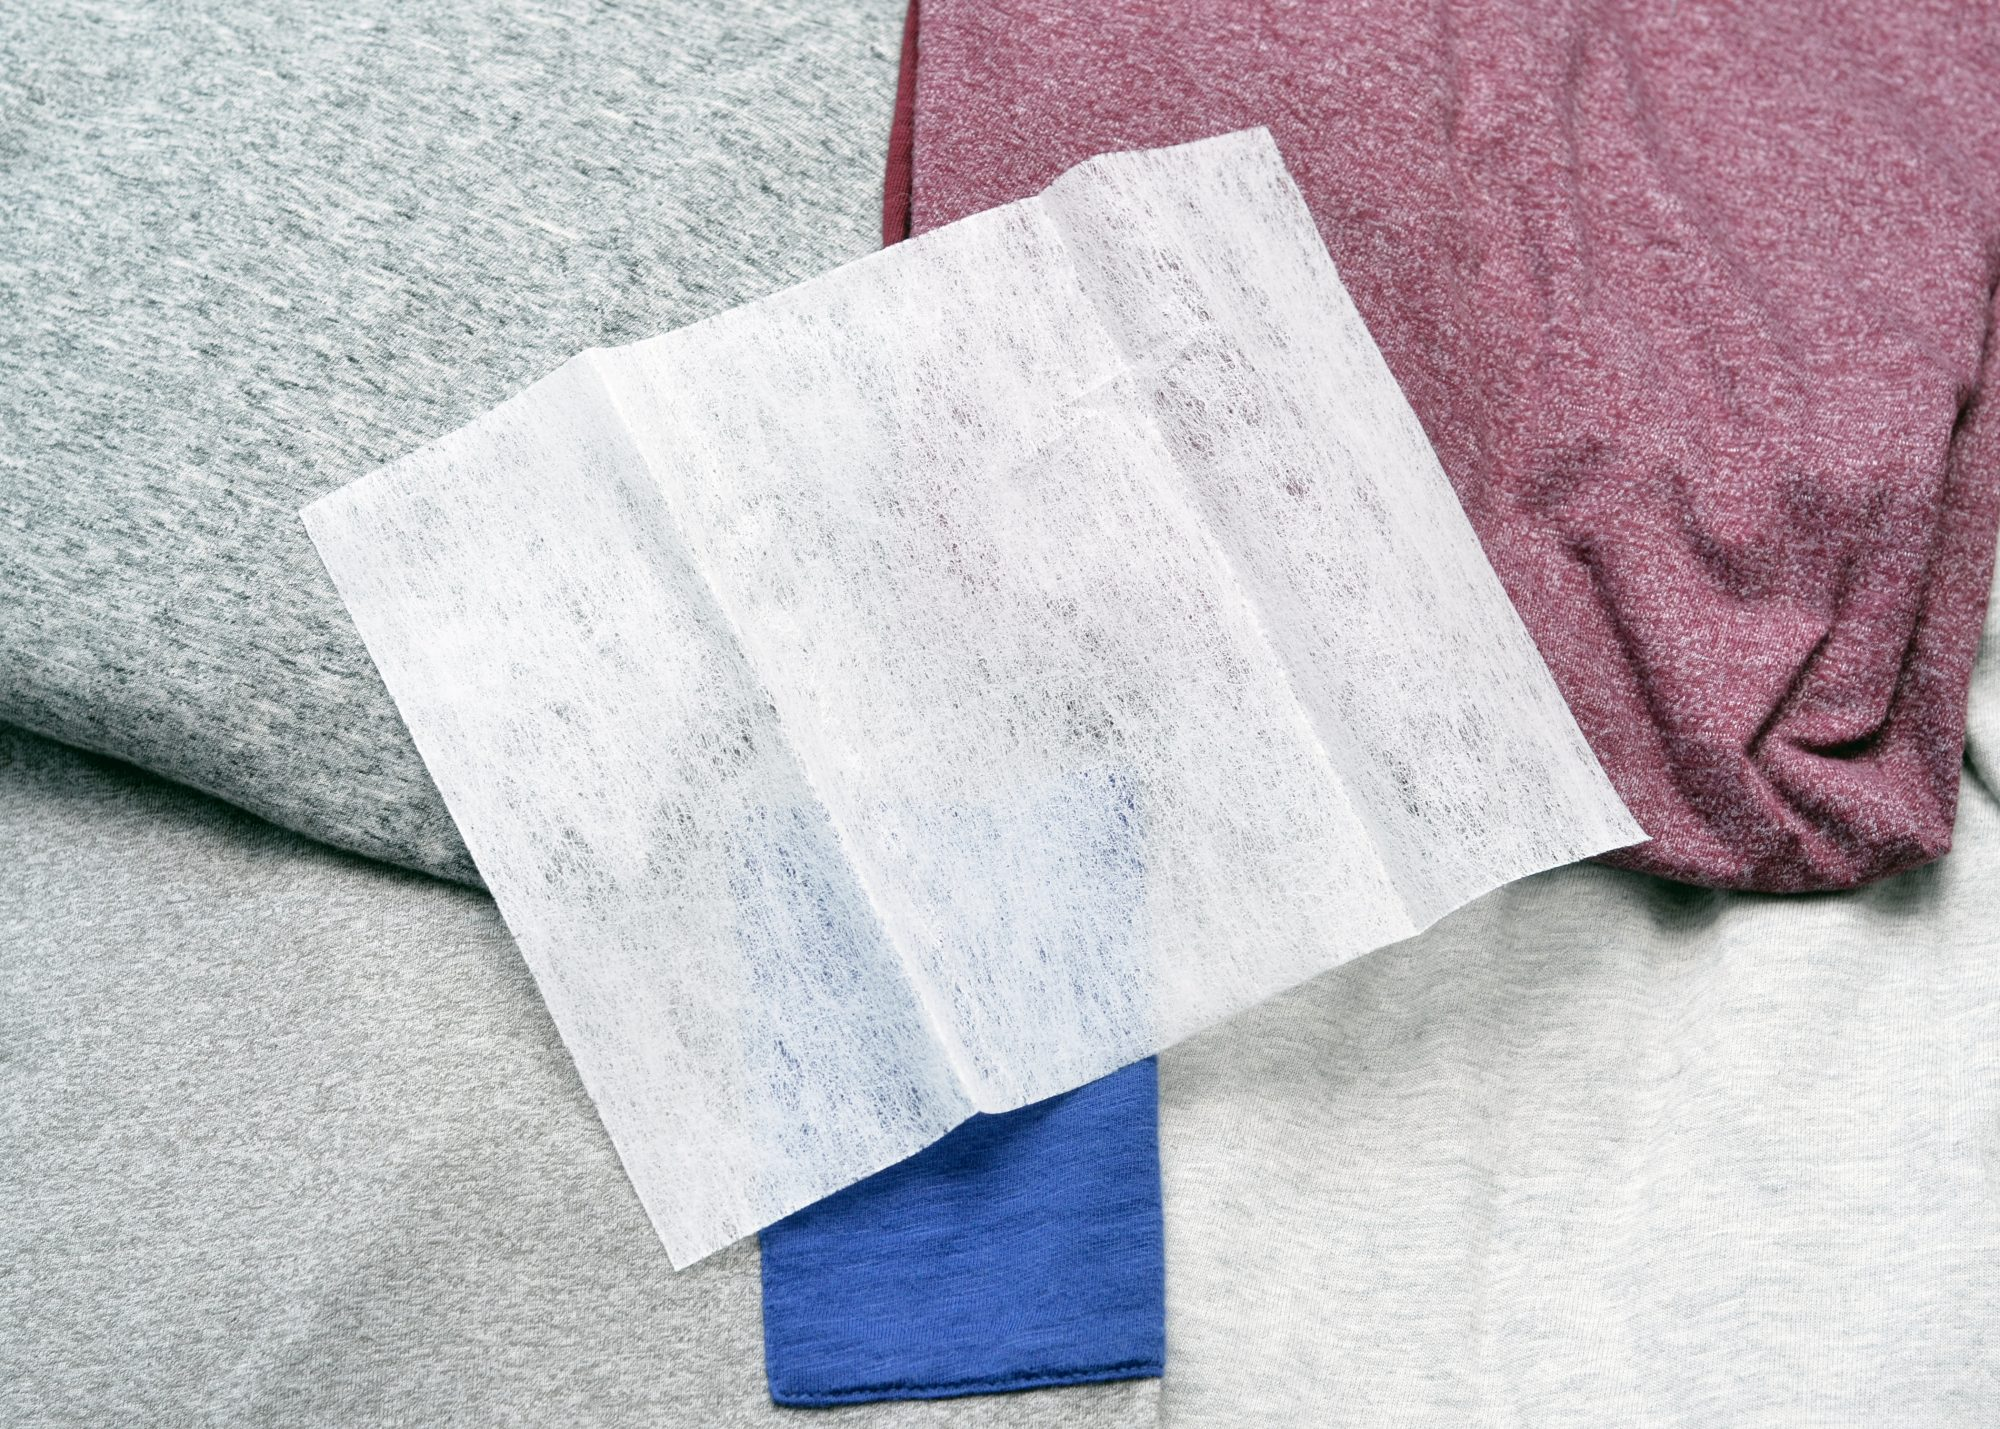 4 Dryer Sheet Hacks That Go Way Beyond the Laundry Room